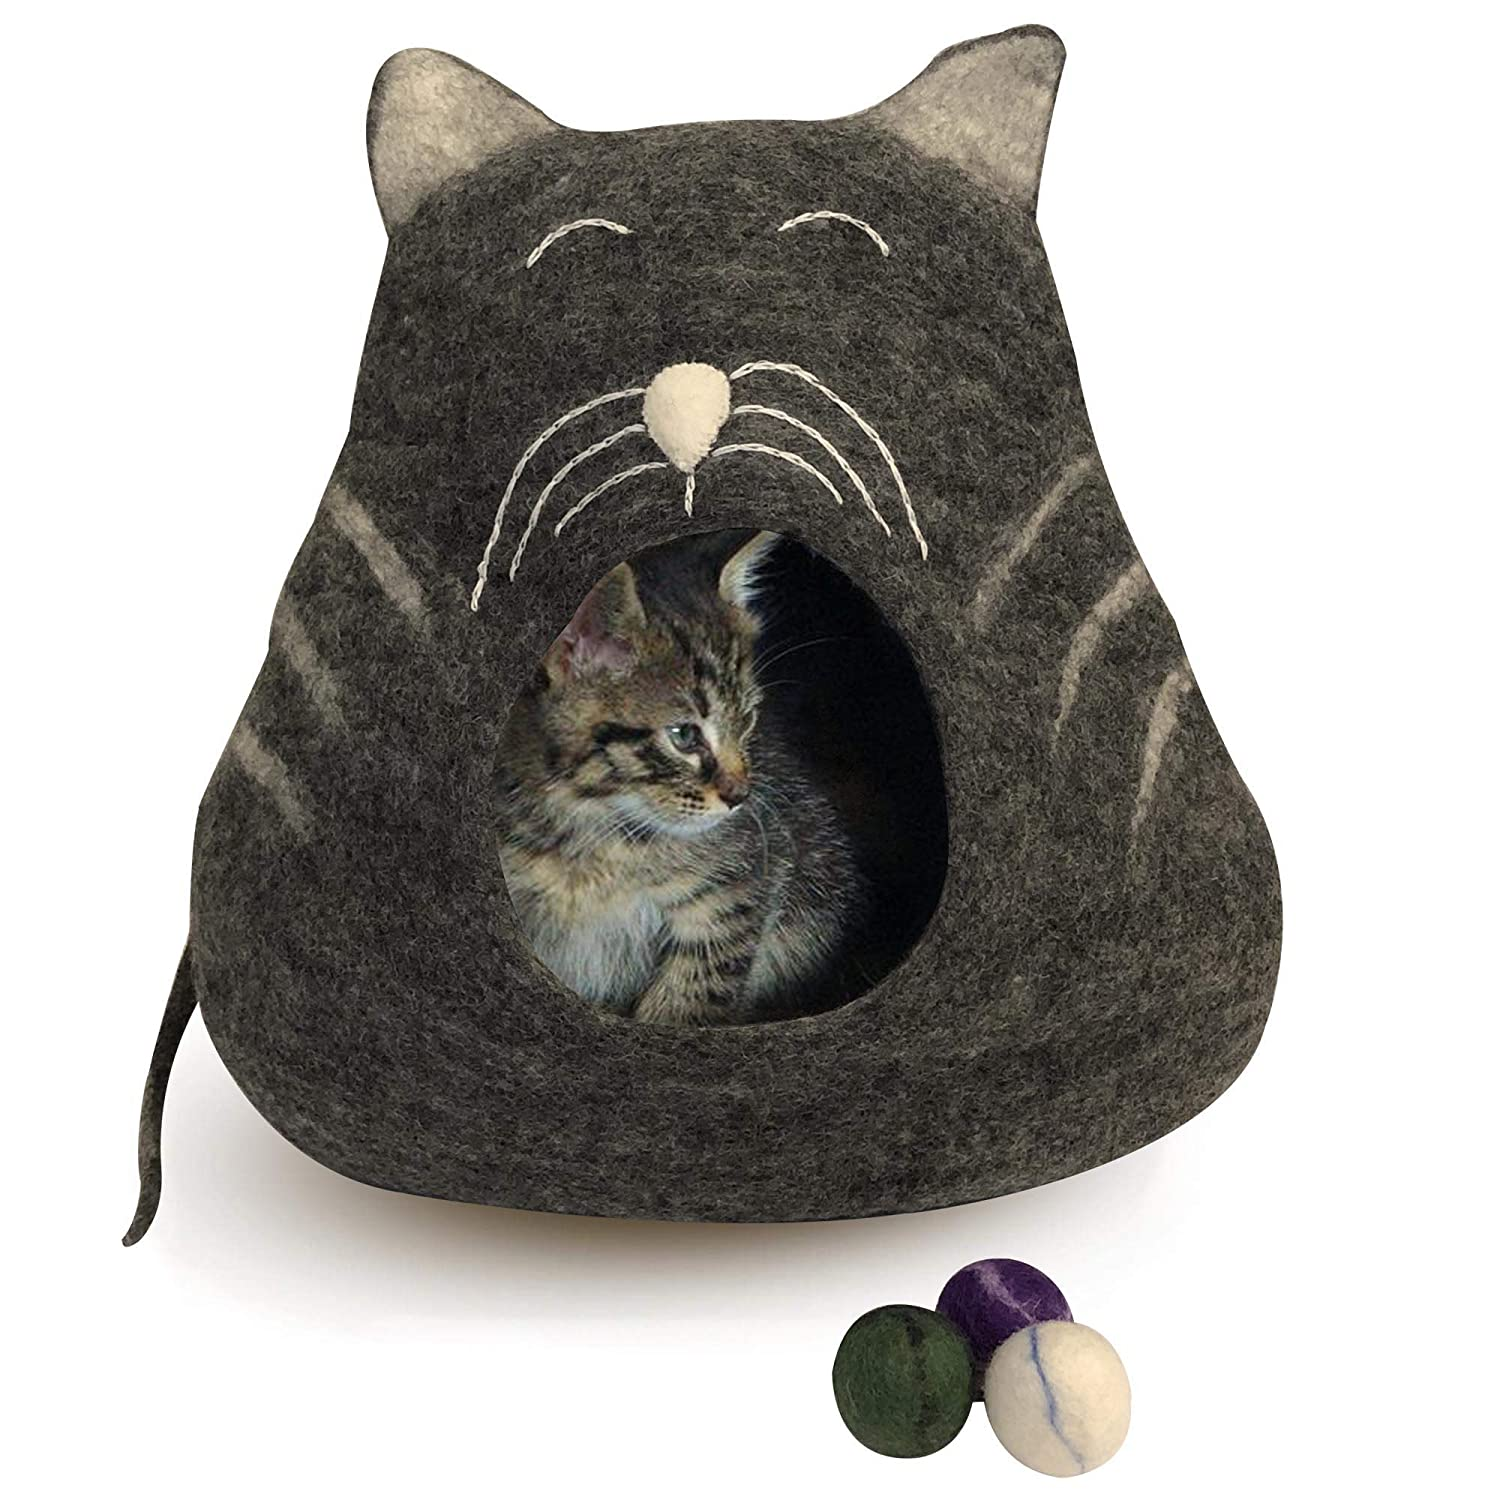 Genuine Felt Cat Bed Cave, Handmade in Nepal 100% All Natural Wool, Super Soft Kittens Cats (Charcoal Whiskers)